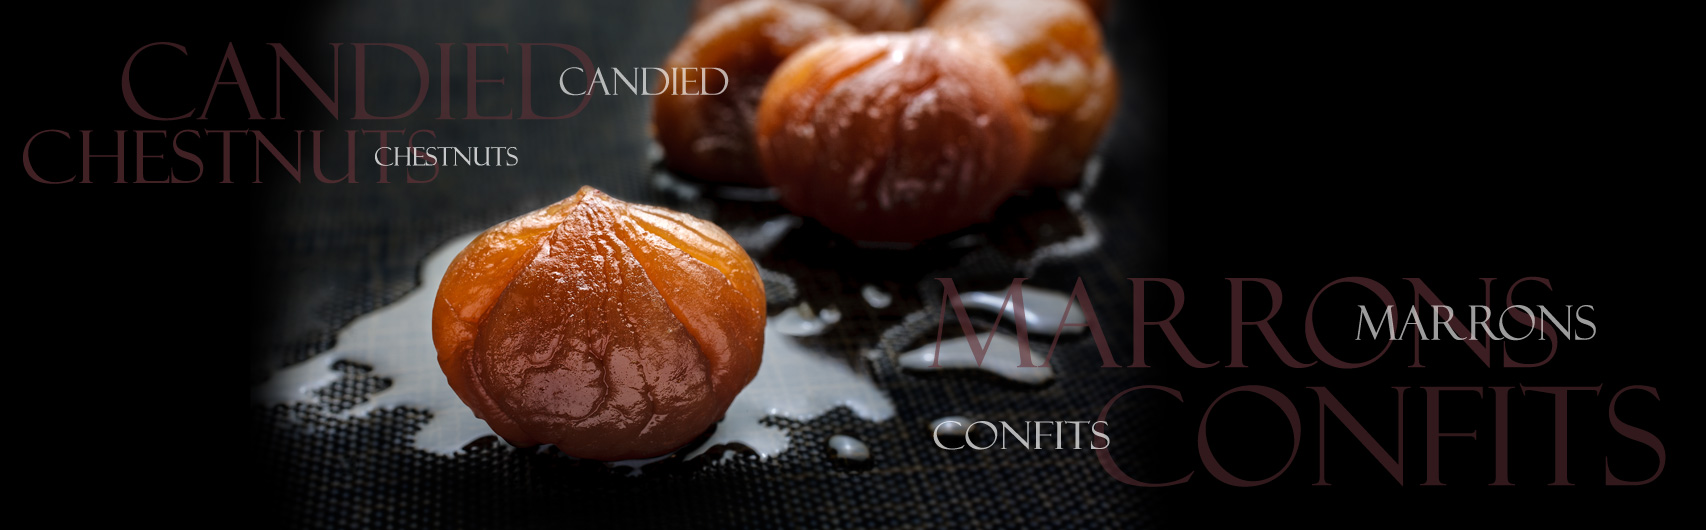 cardelion chesnuts confits marrons